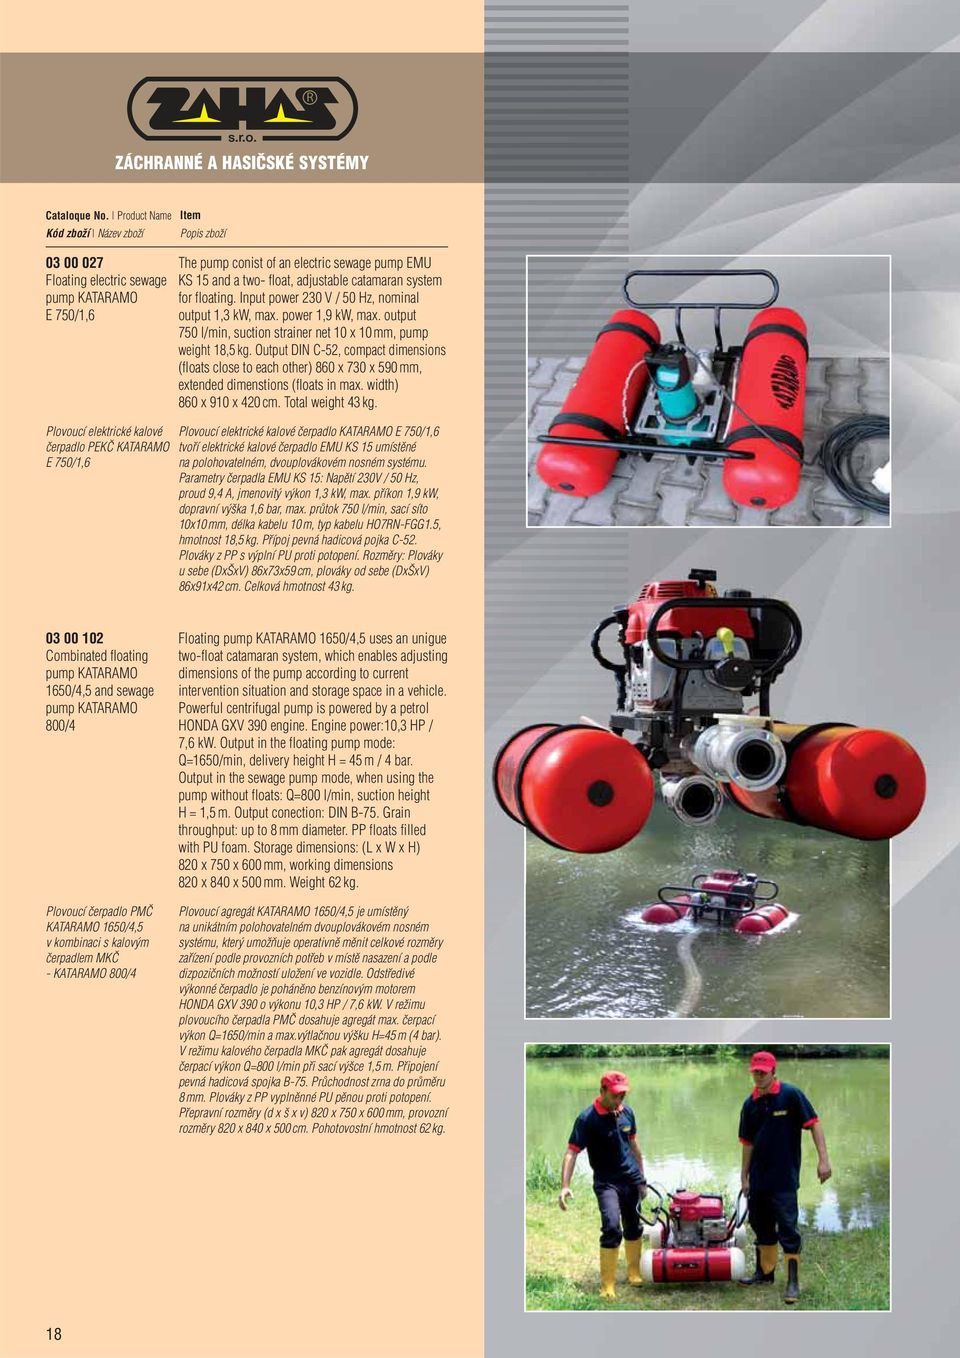 output 750 l/min, suction strainer net 10 x 10 mm, pump weight 18,5 kg. Output DIN C-52, compact dimensions (floats close to each other) 860 x 730 x 590 mm, extended dimenstions (floats in max.